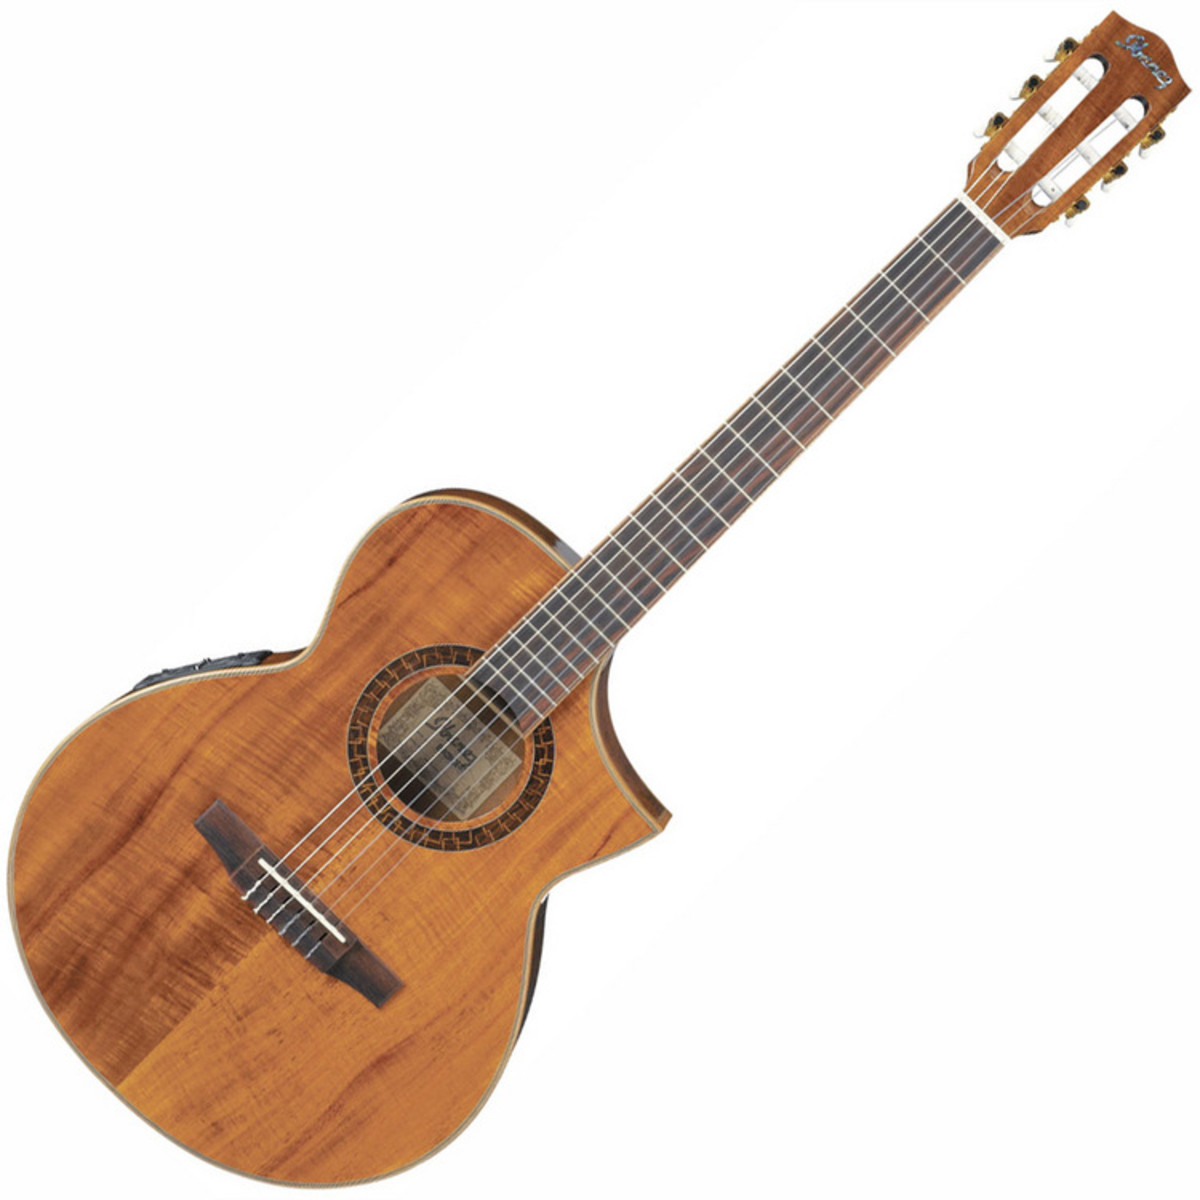 ibanez ewn28k0e exotic wood nylon string guitar nearly new at. Black Bedroom Furniture Sets. Home Design Ideas